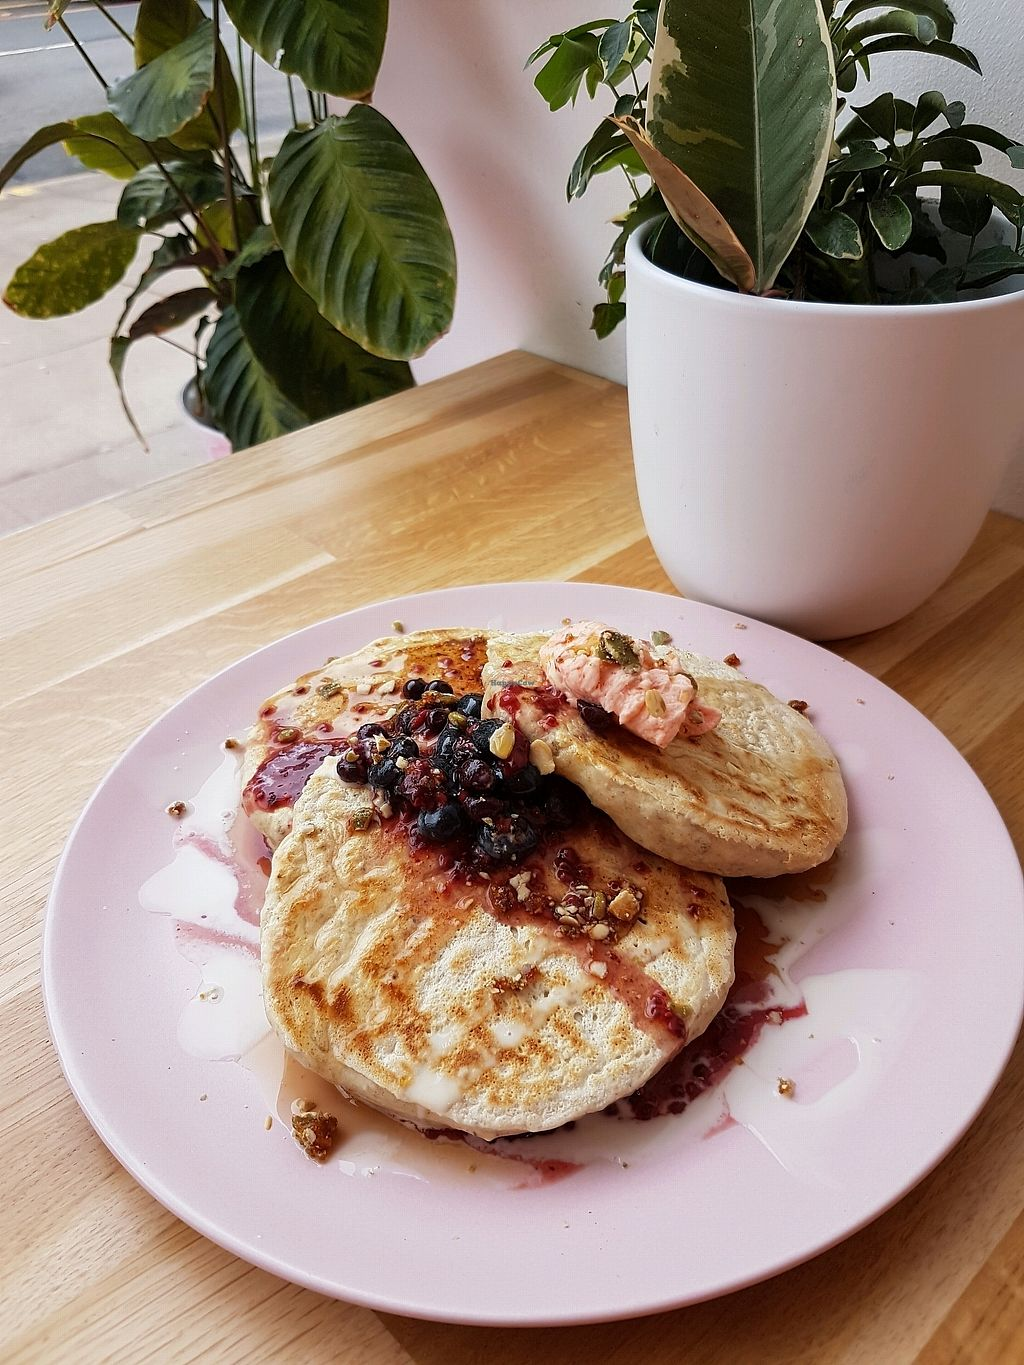 """Photo of Serenity Now  by <a href=""""/members/profile/bpaula35"""">bpaula35</a> <br/>Blueberry Pancakes  <br/> April 14, 2018  - <a href='/contact/abuse/image/102295/385643'>Report</a>"""